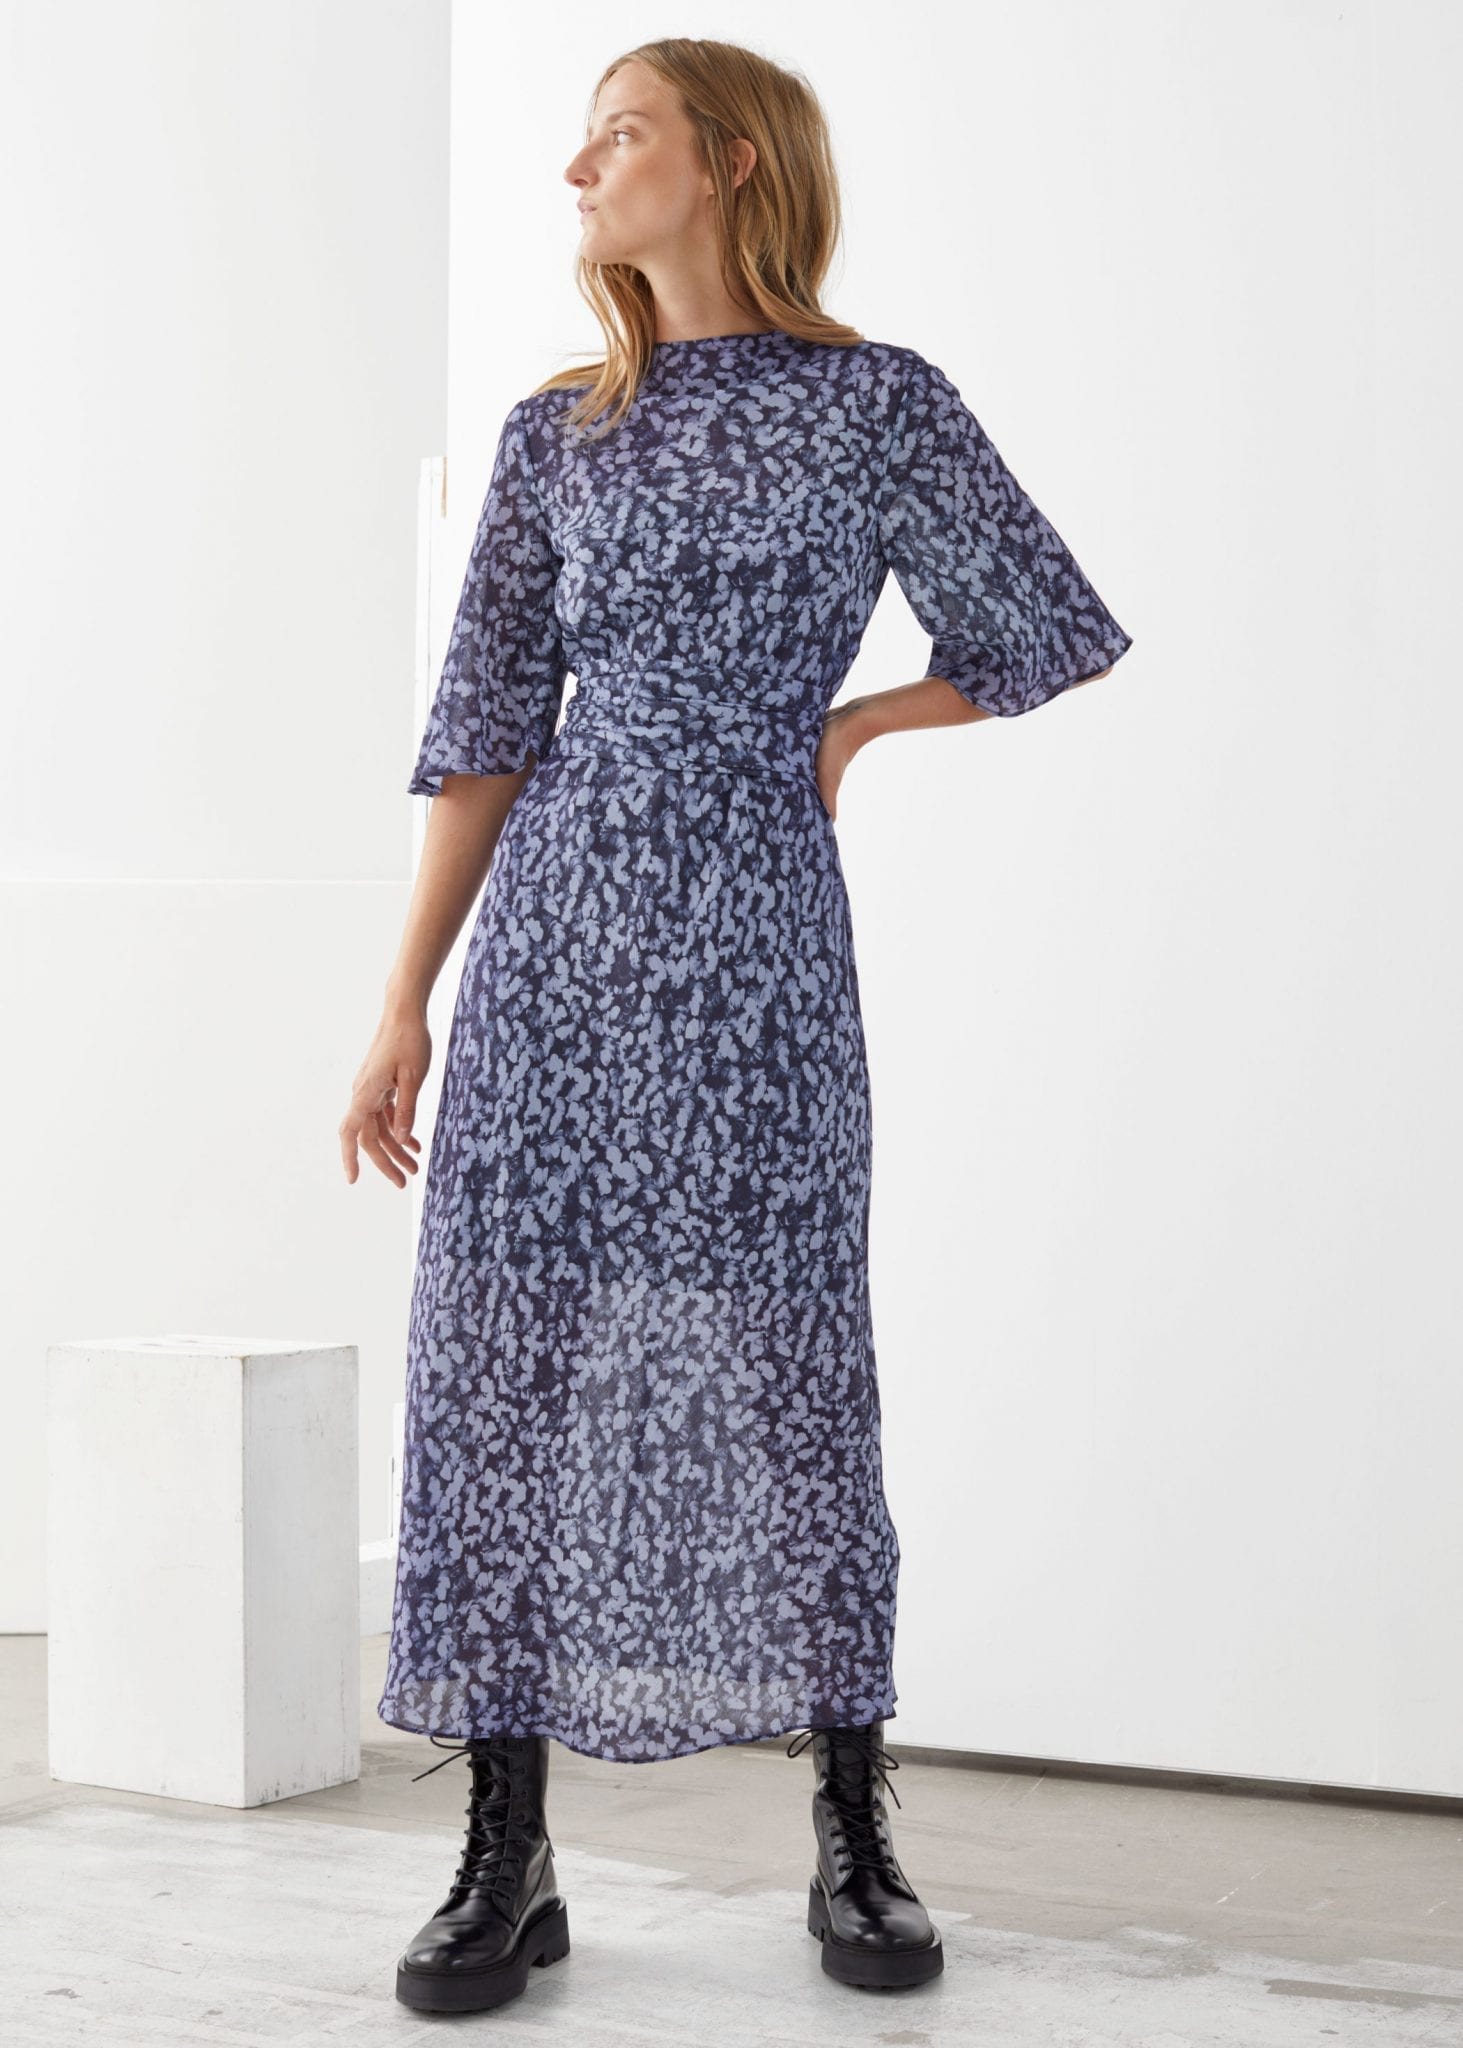 & OTHER STORIES Belted Midi Print Dress